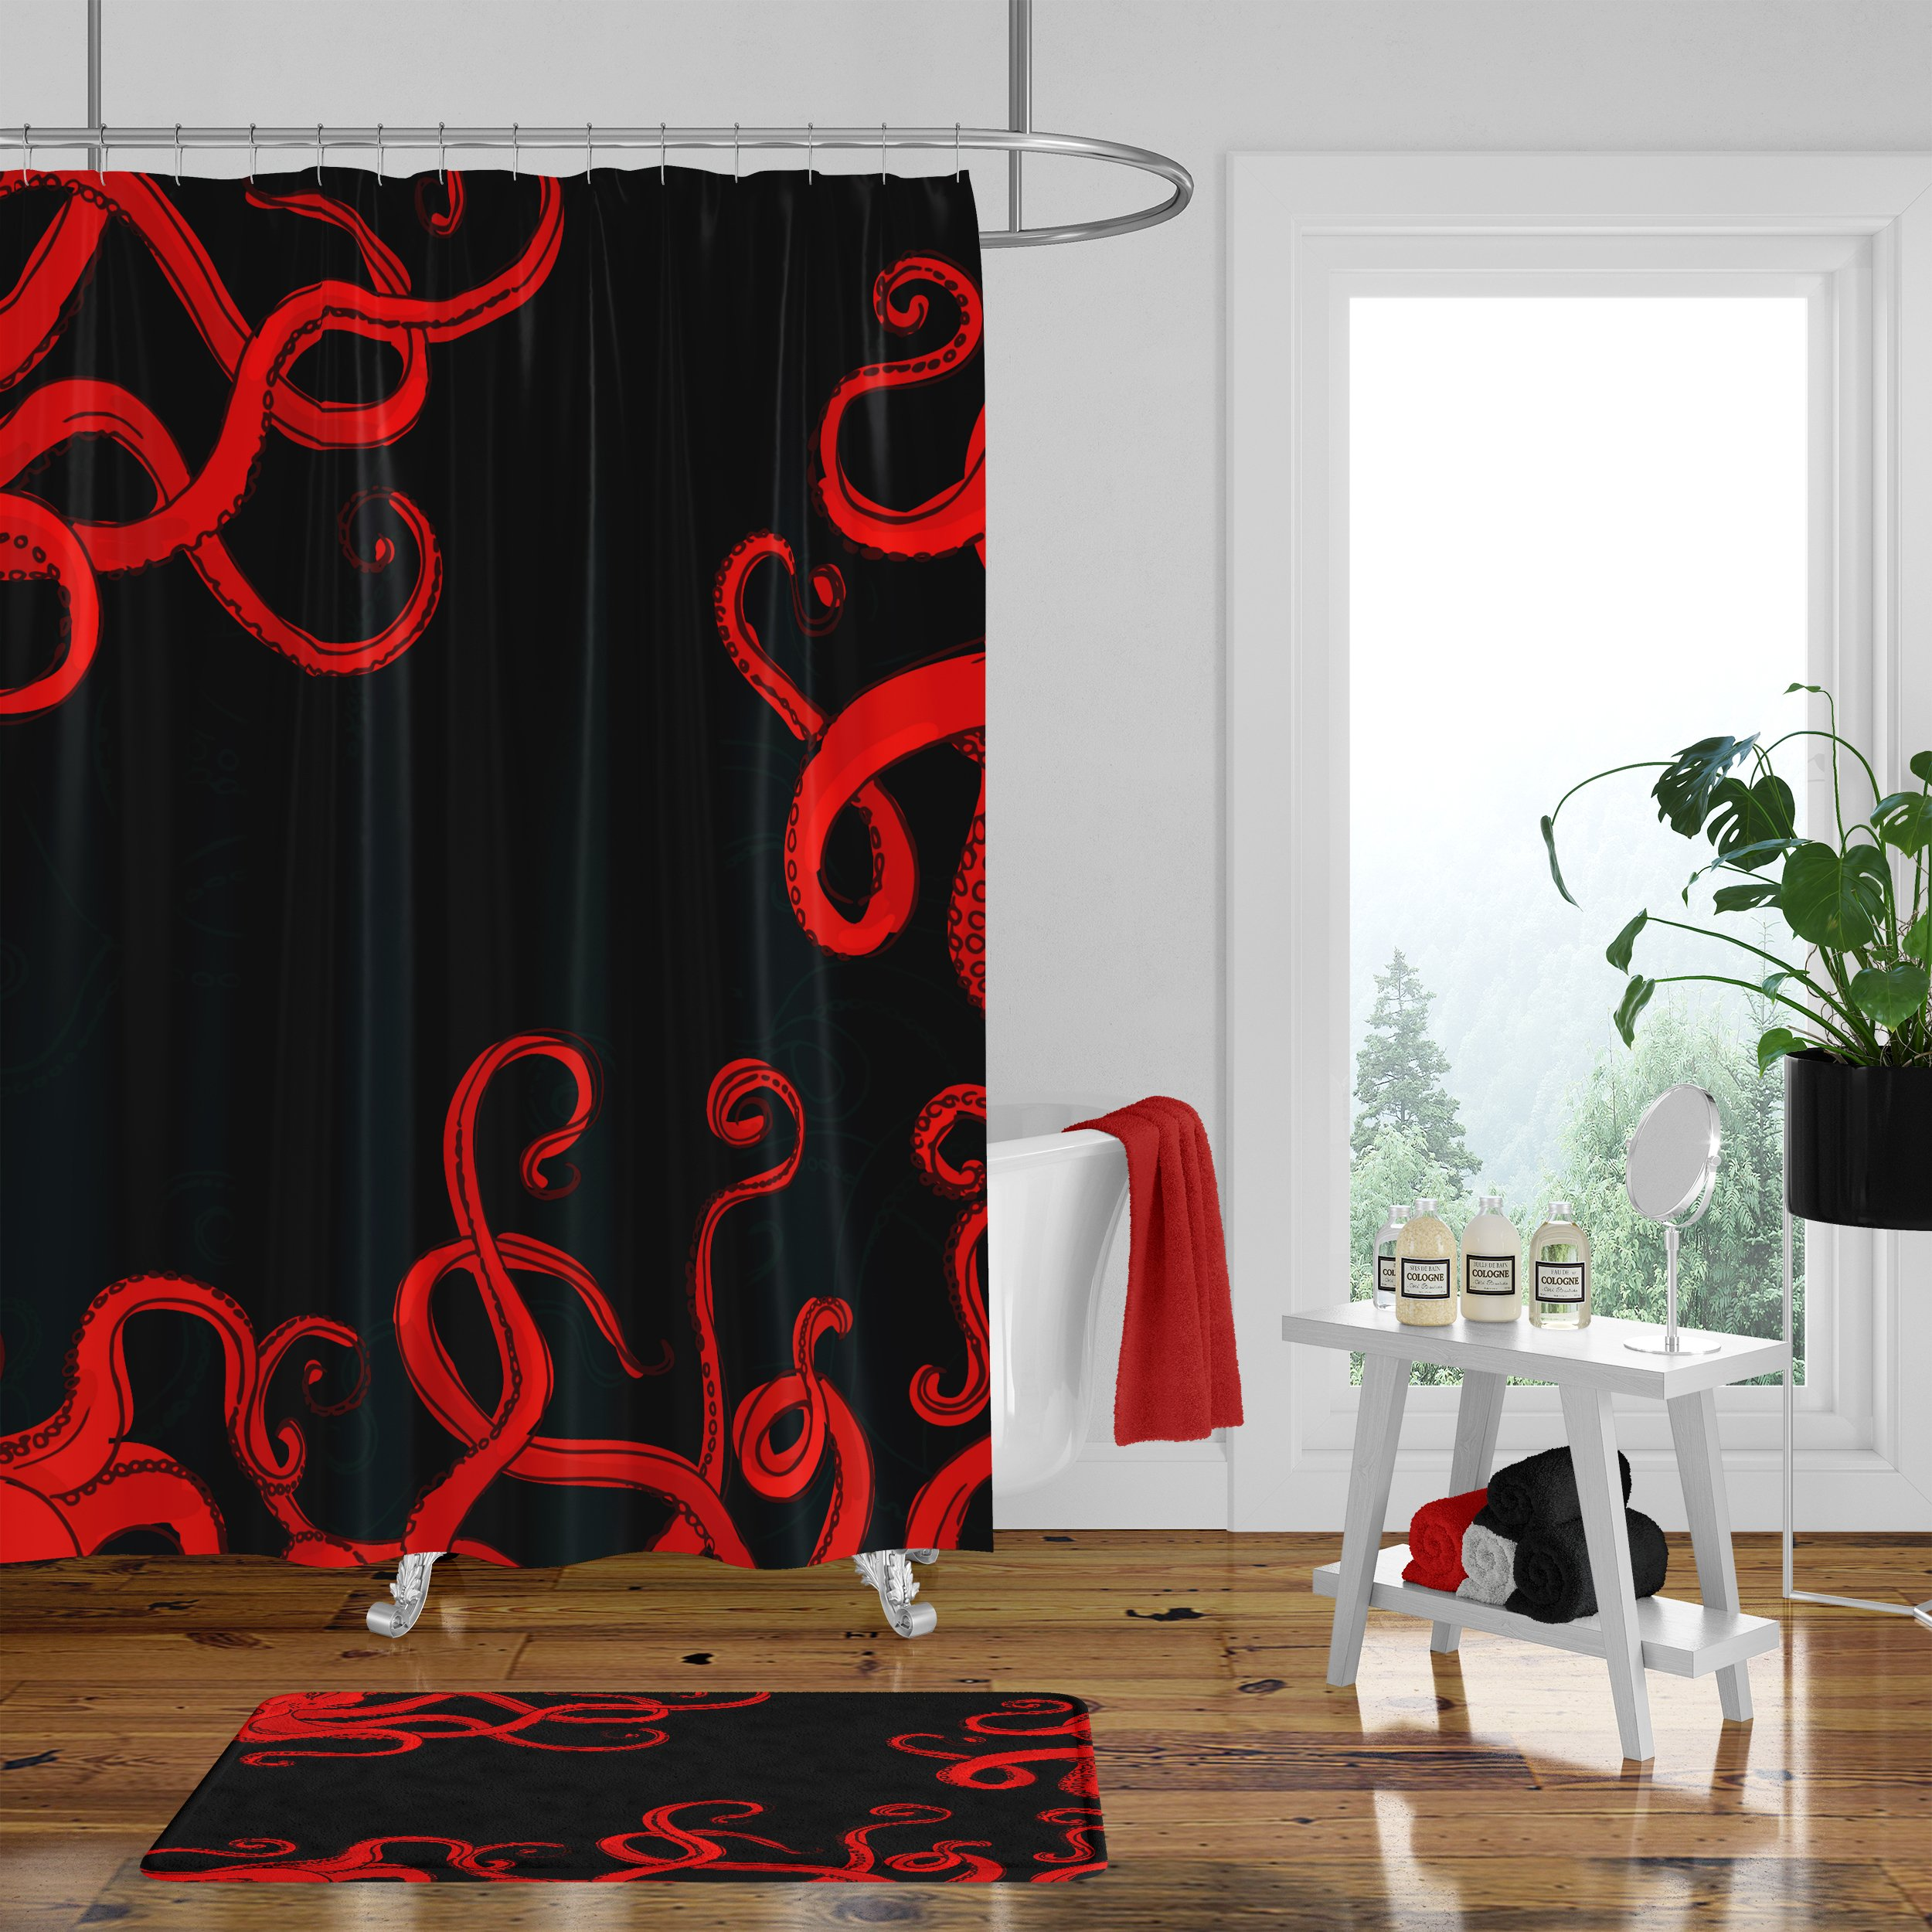 Black And Red Octopus Shower Curtain Towels Bath Mat Red